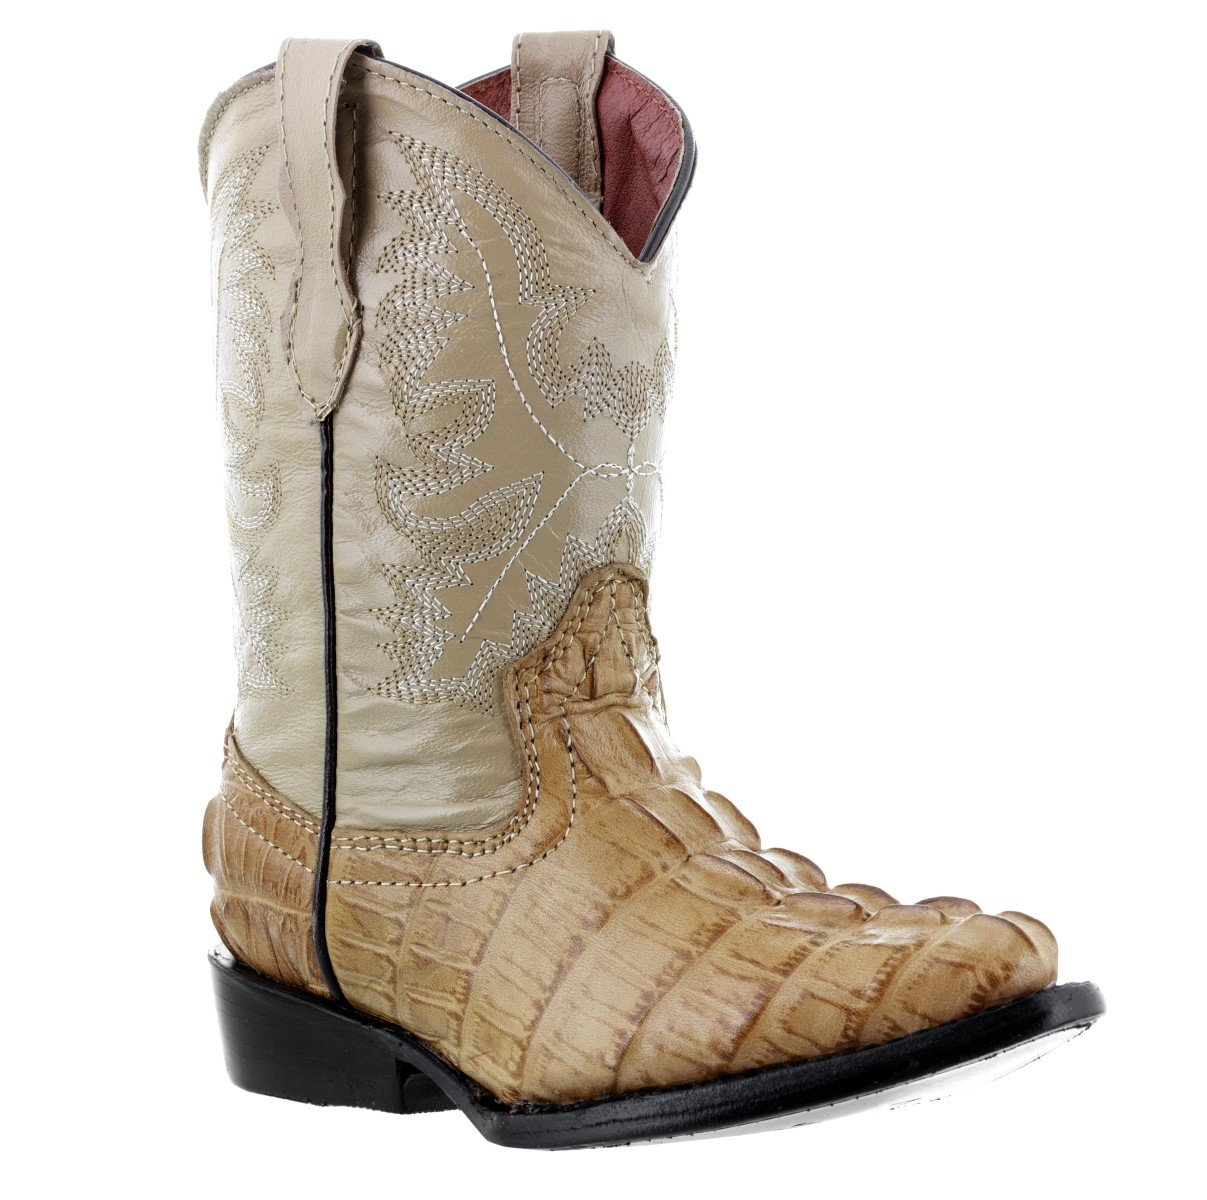 Veretta Boots - Kids Toddler Sand Crocodile Tail Leather Cowboy Boots J Toe 10.5 Toddler